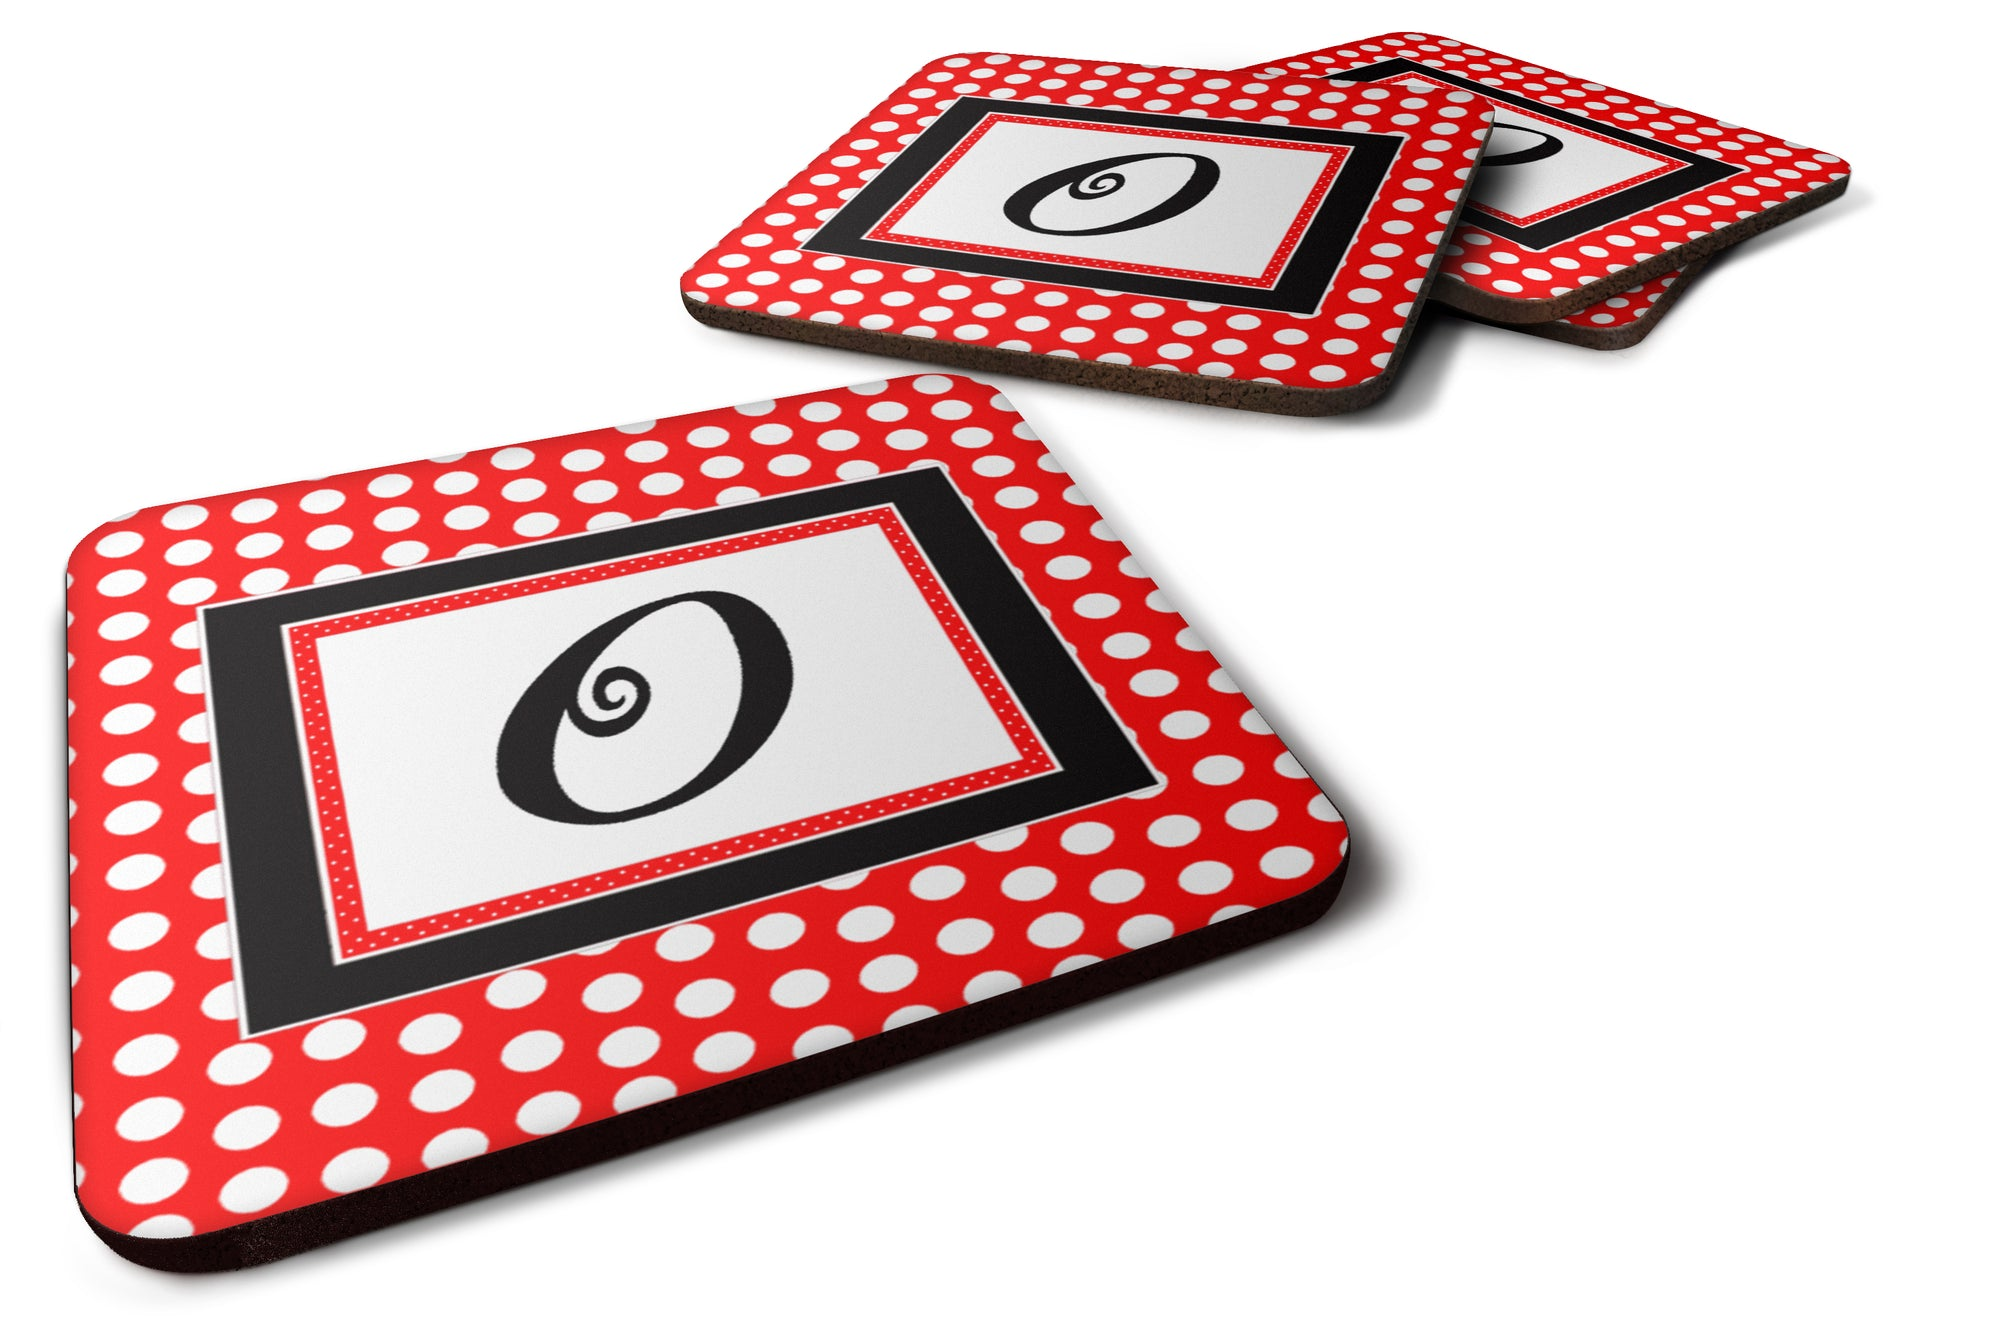 Set of 4 Monogram - Red Black Polka Dots Foam Coasters Initial Letter O by Caroline's Treasures